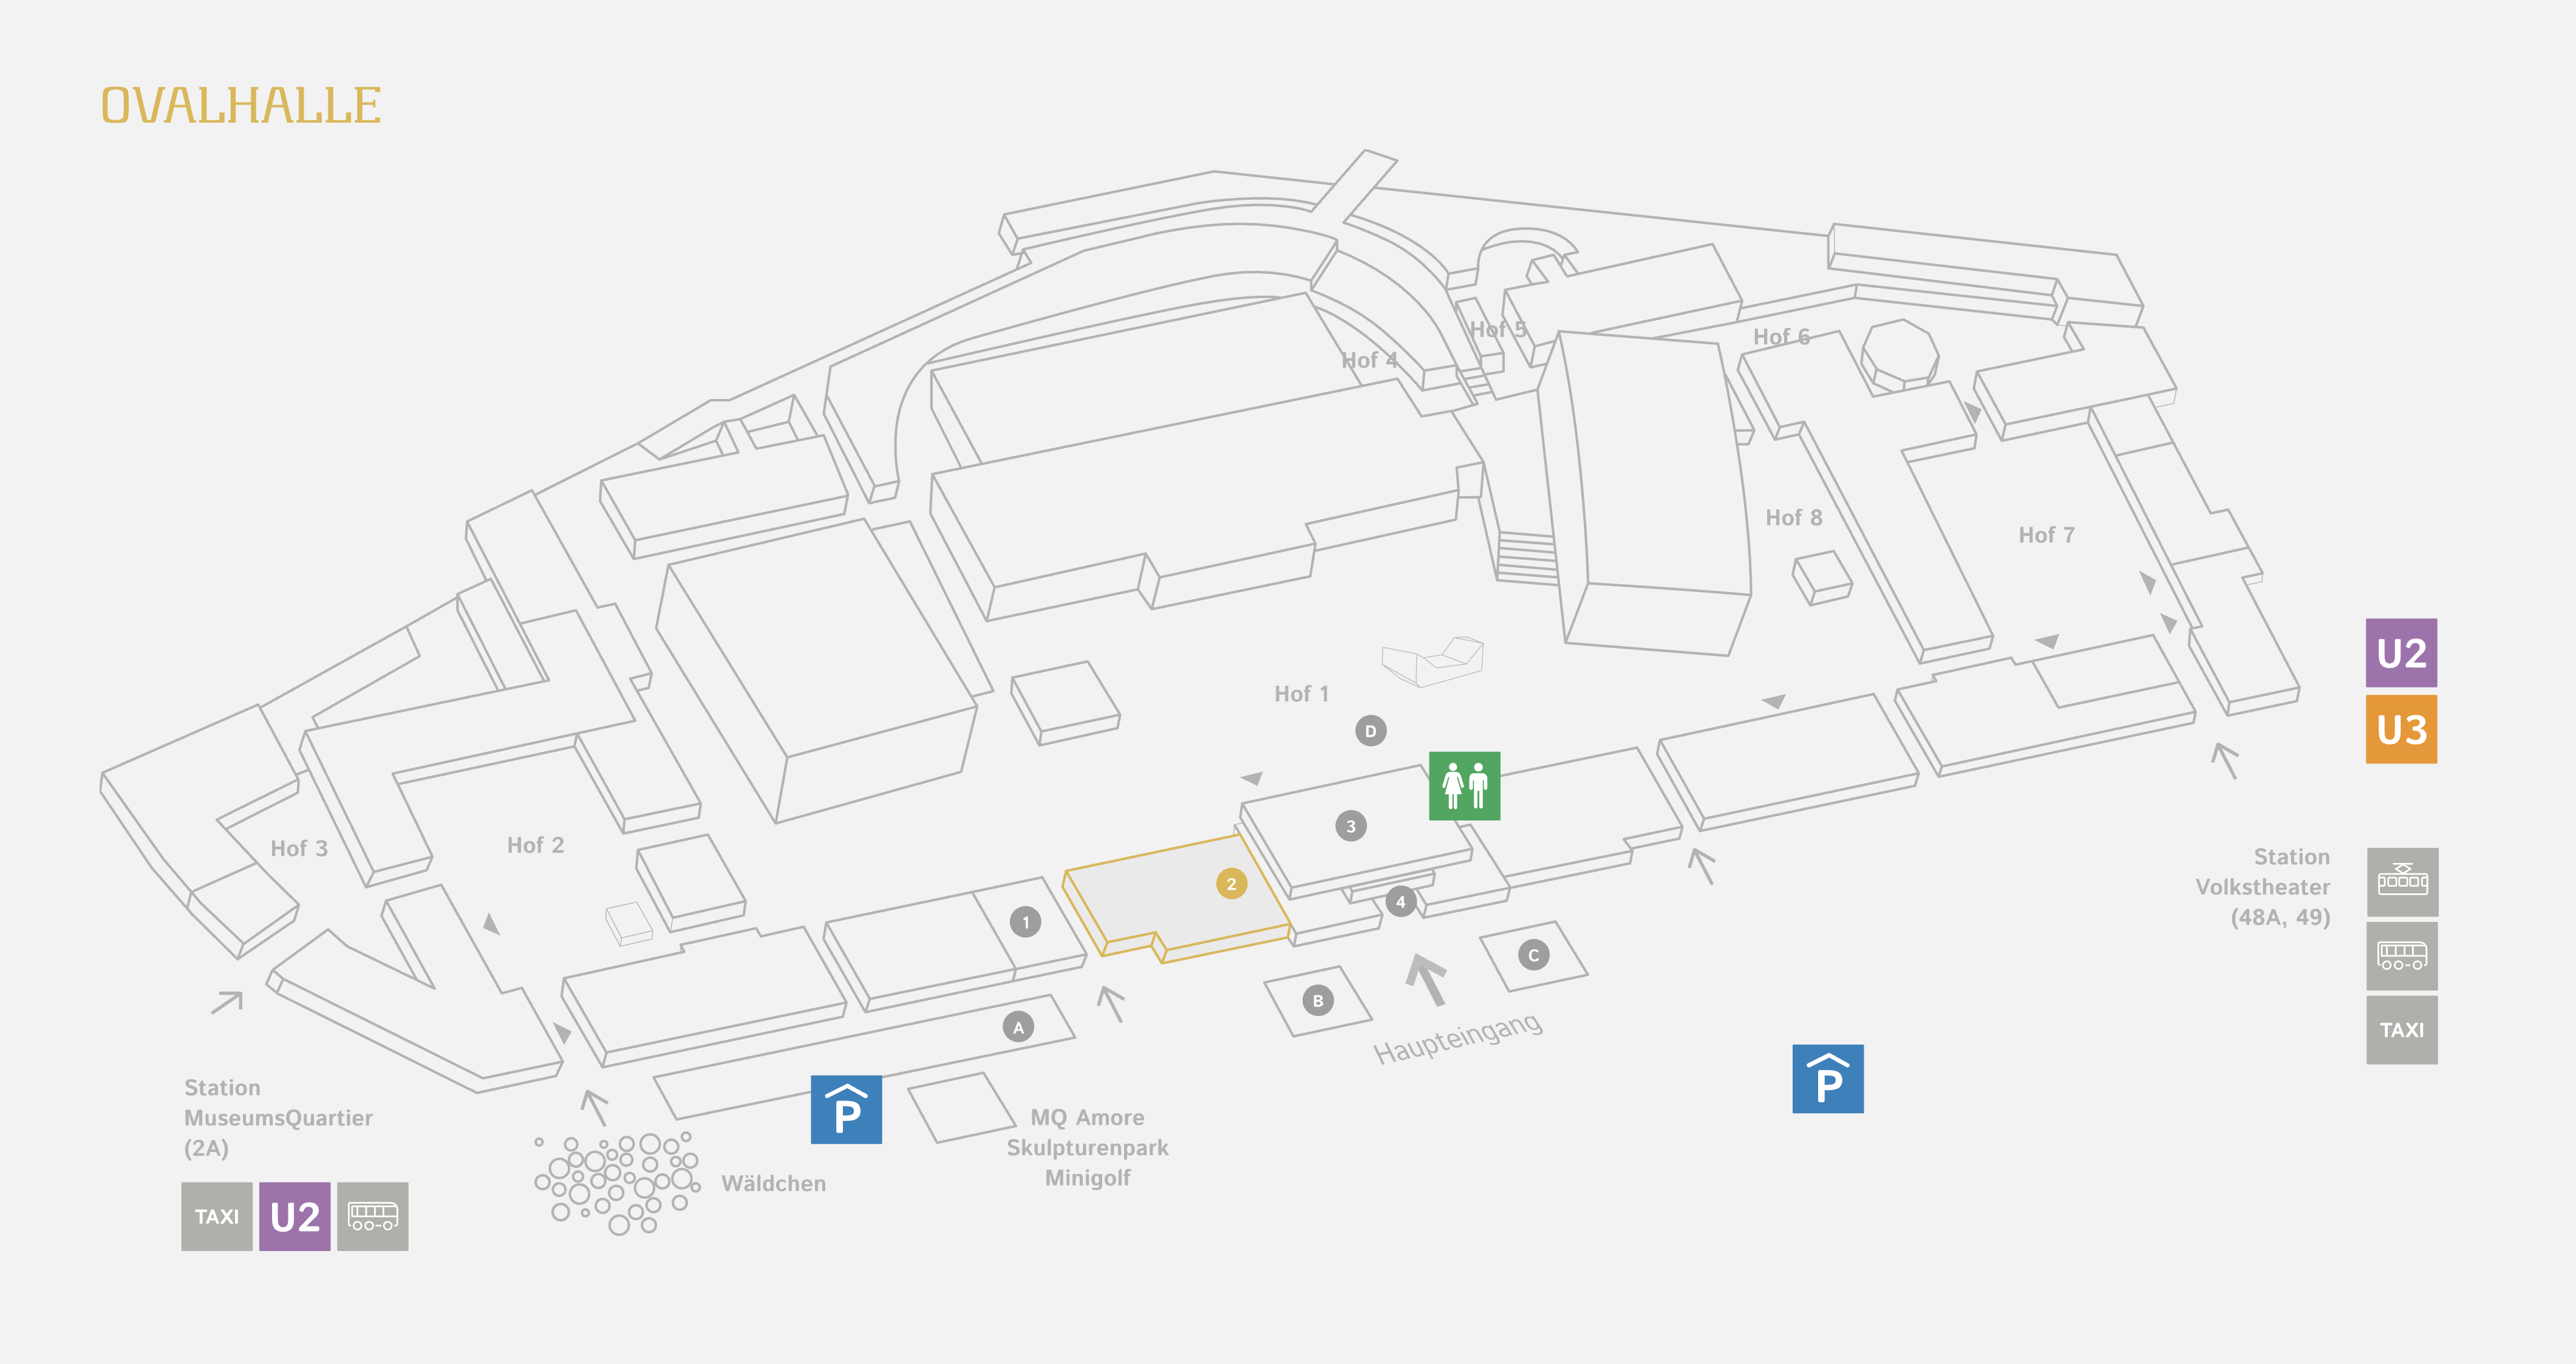 The entrance to the Ovalhalle is just to the left of the main entrance (between the 1 & 2 marked on the map above).